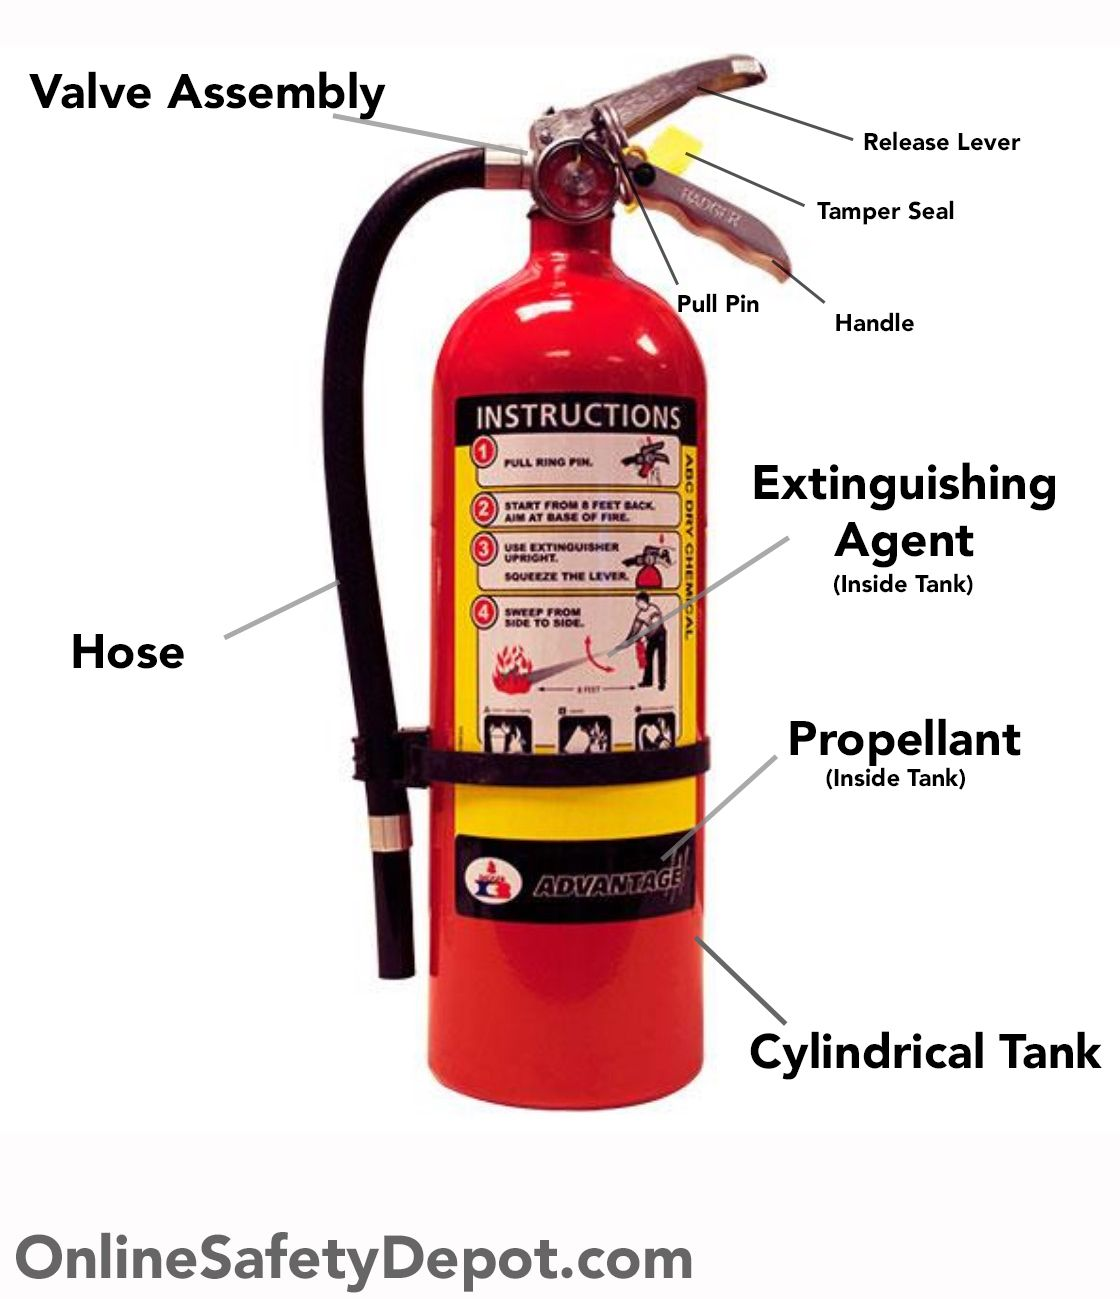 Parts And Components Of A Fire Extinguisher Diagram For Handheld